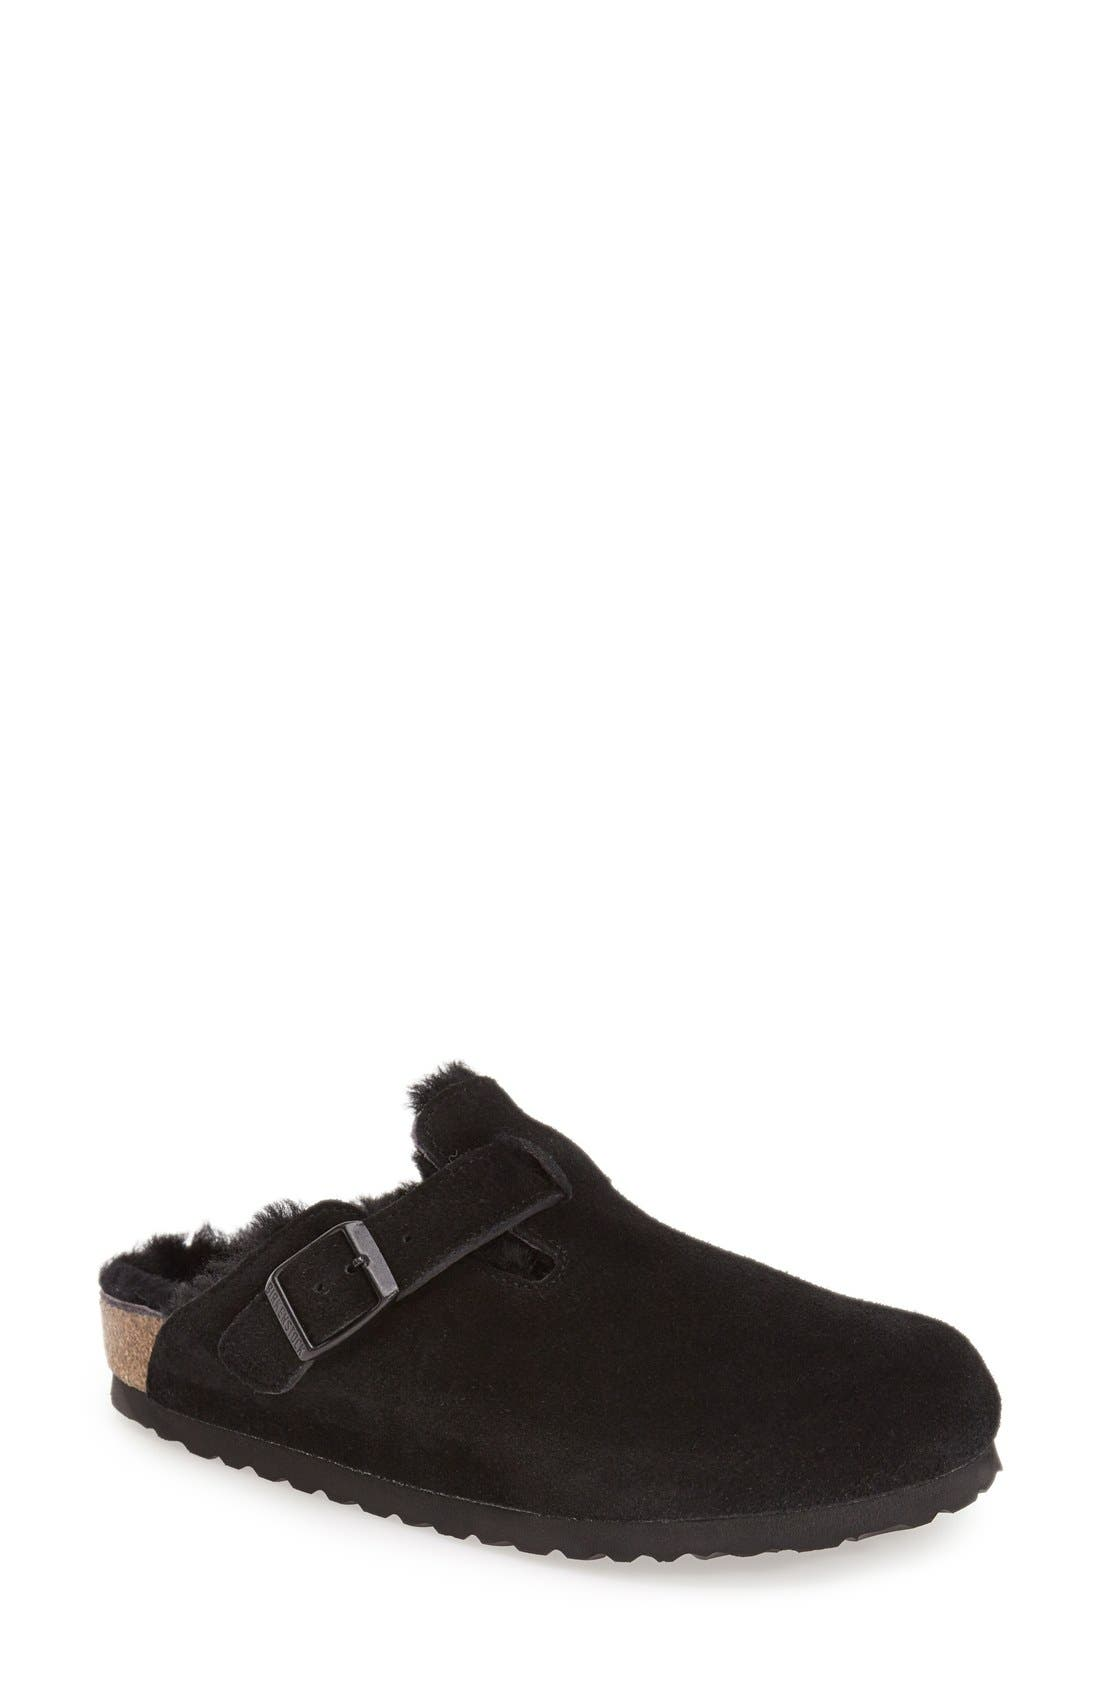 'Boston' Genuine Shearling Lined Clog,                             Main thumbnail 1, color,                             Black